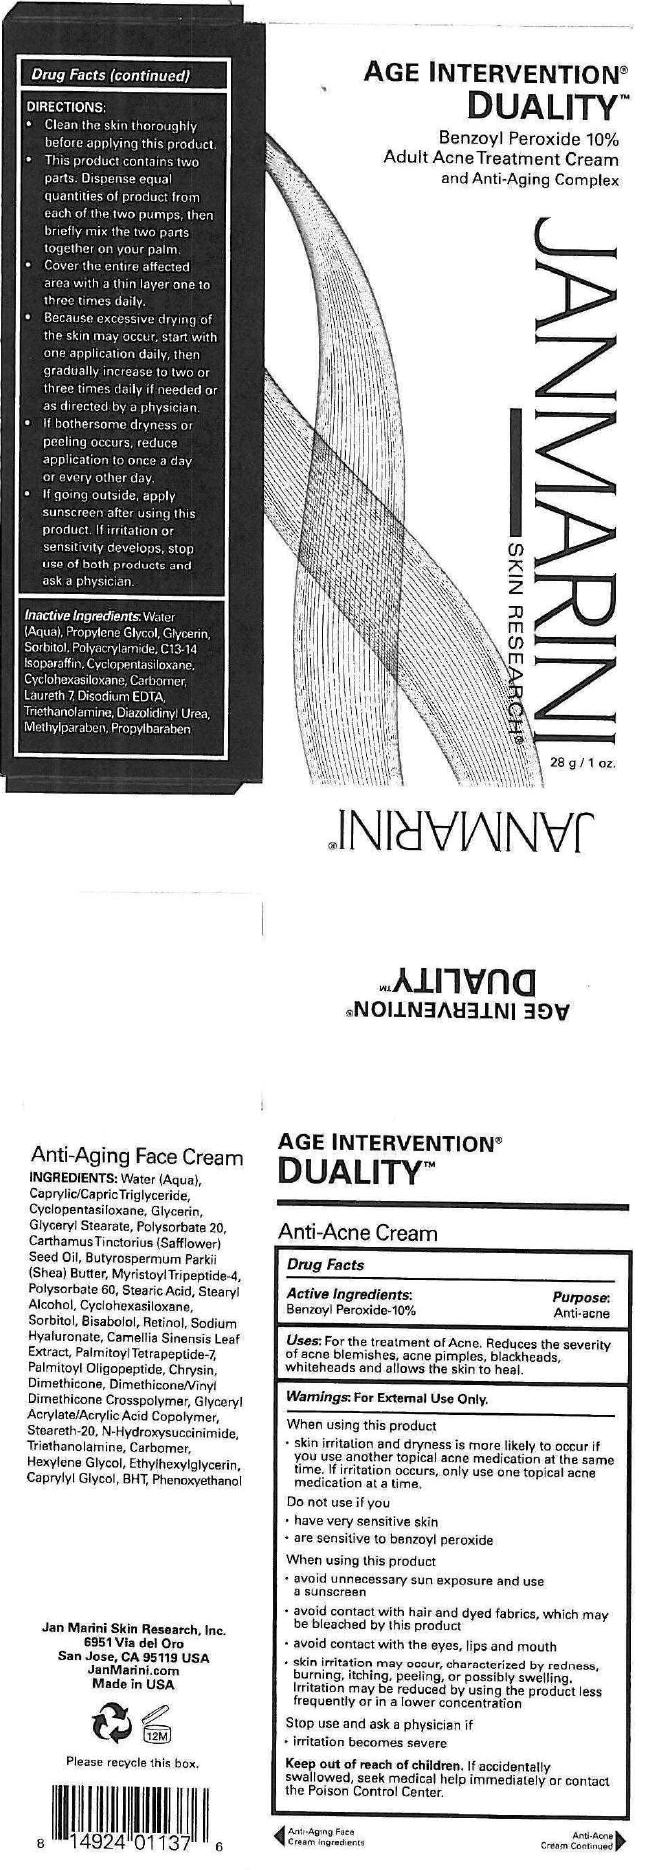 Age Intervention Duality (Benzoyl Peroxide) Cream [G.s. Cosmeceutical Usa, Inc.]